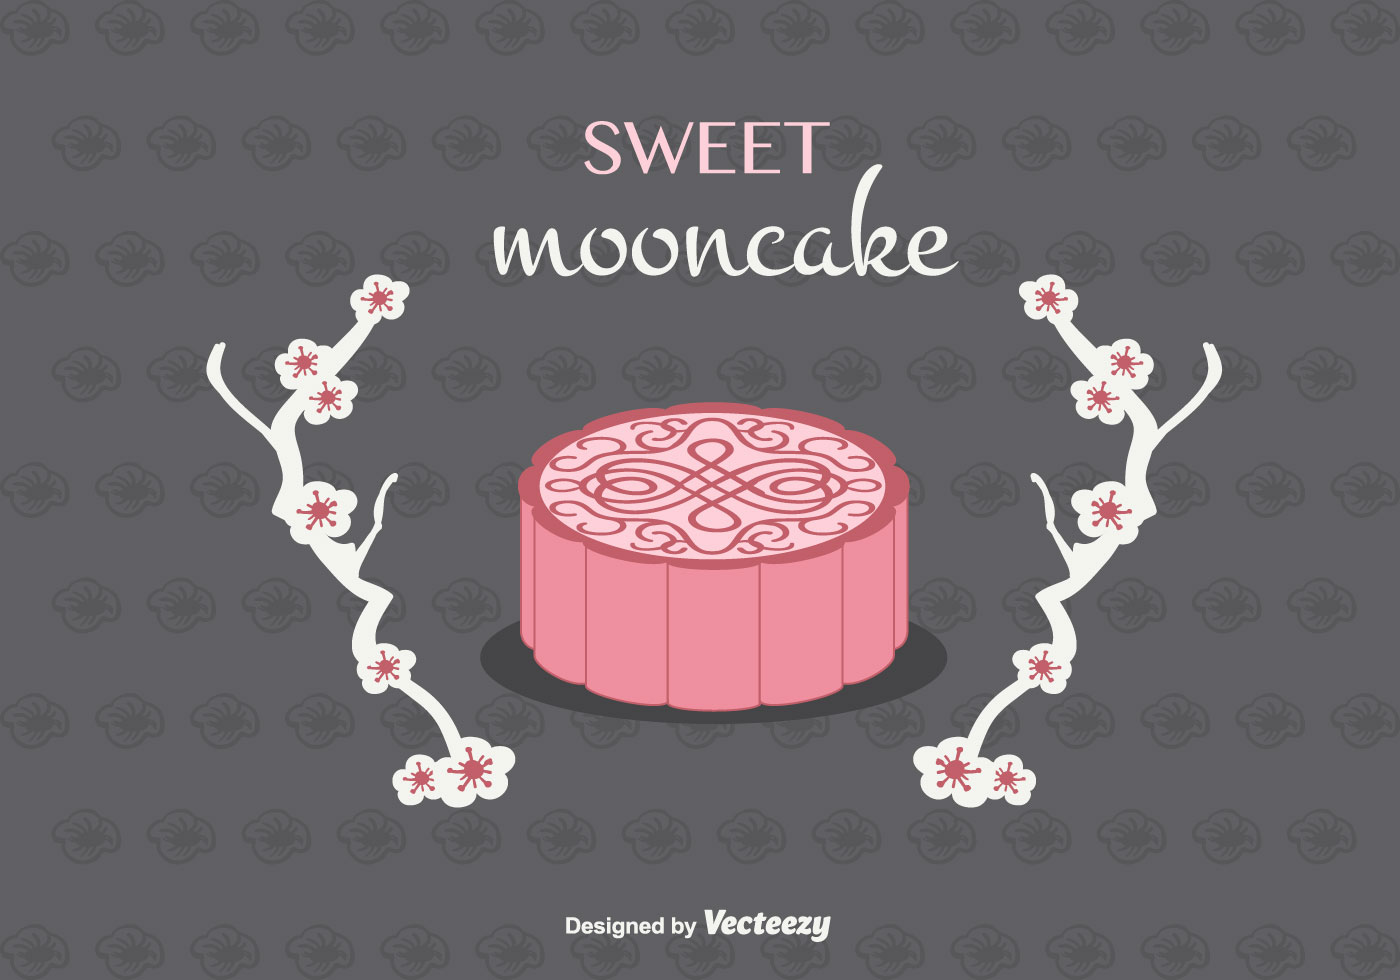 Mooncake Vector Background Download Free Vector Art